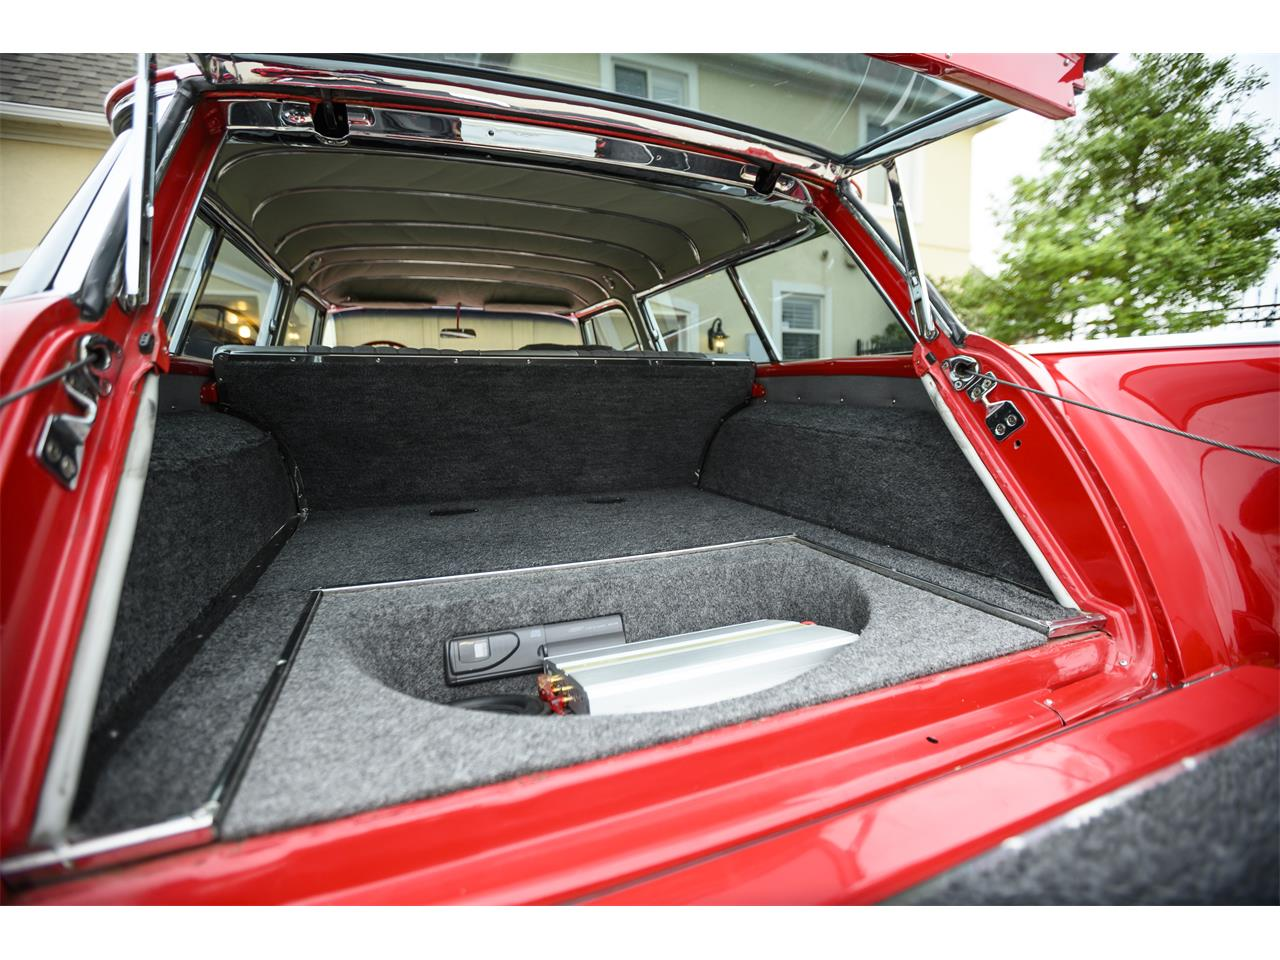 Large Picture of Classic '57 Chevrolet Bel Air Nomad - $67,400.00 - PZTB